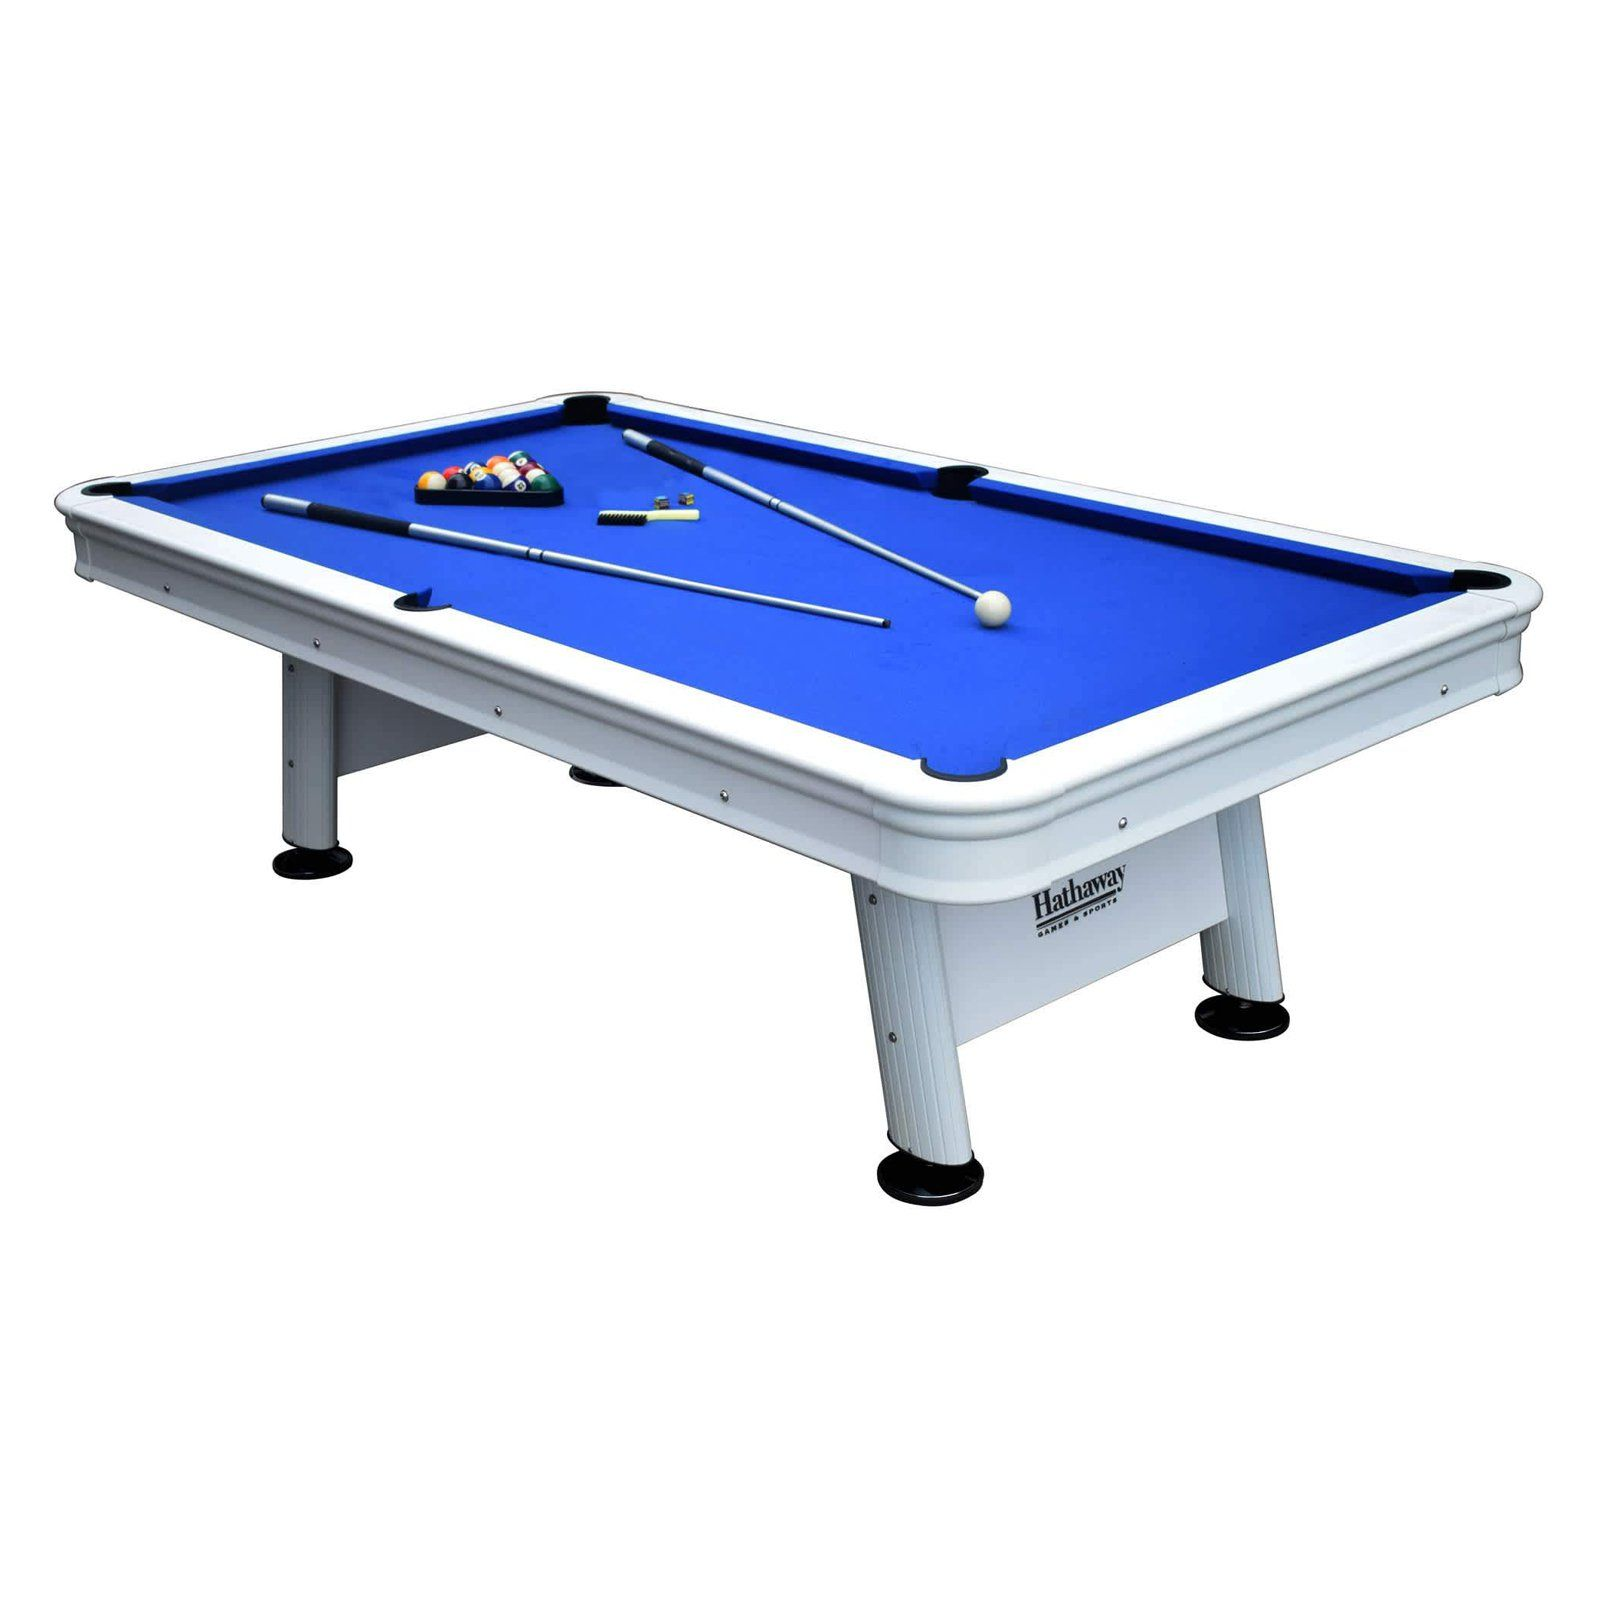 Hathaway Alpine 8 Ft Outdoor Pool Table Outdoor Pool Table